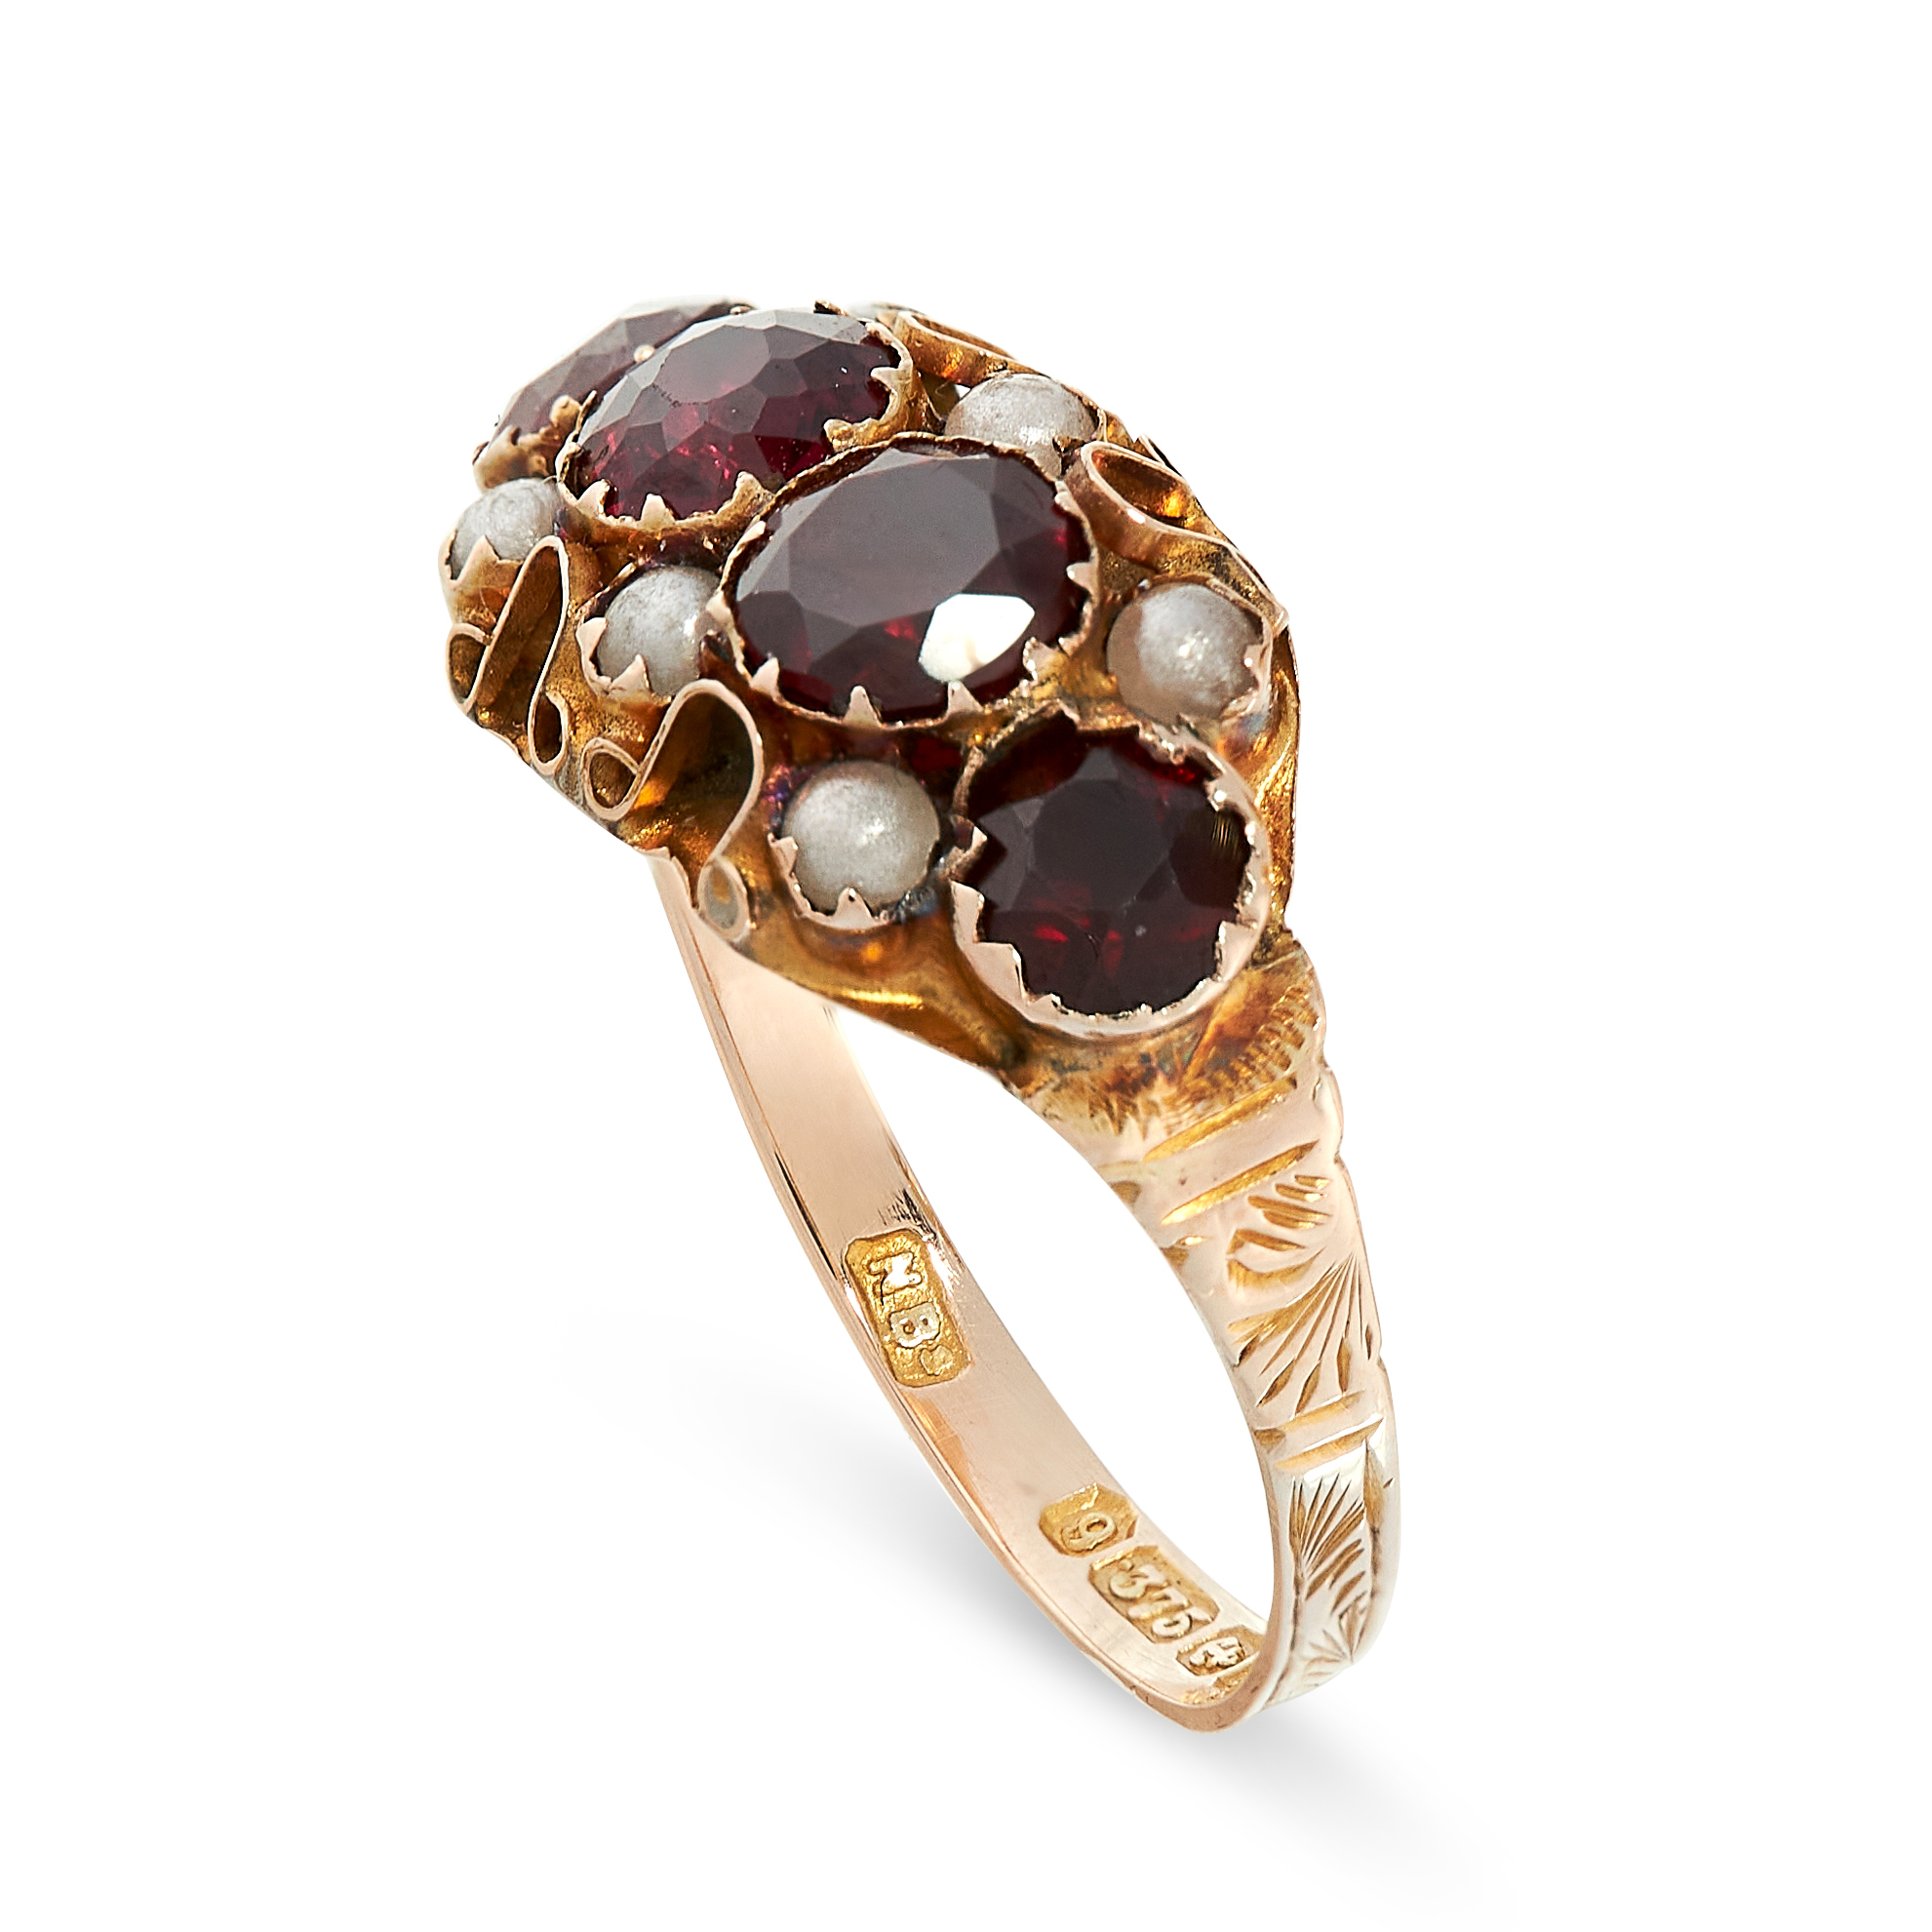 ANTIQUE GARNET AND PEARL RING in yellow gold, comprising of four round cut garnets accented by six - Image 2 of 2